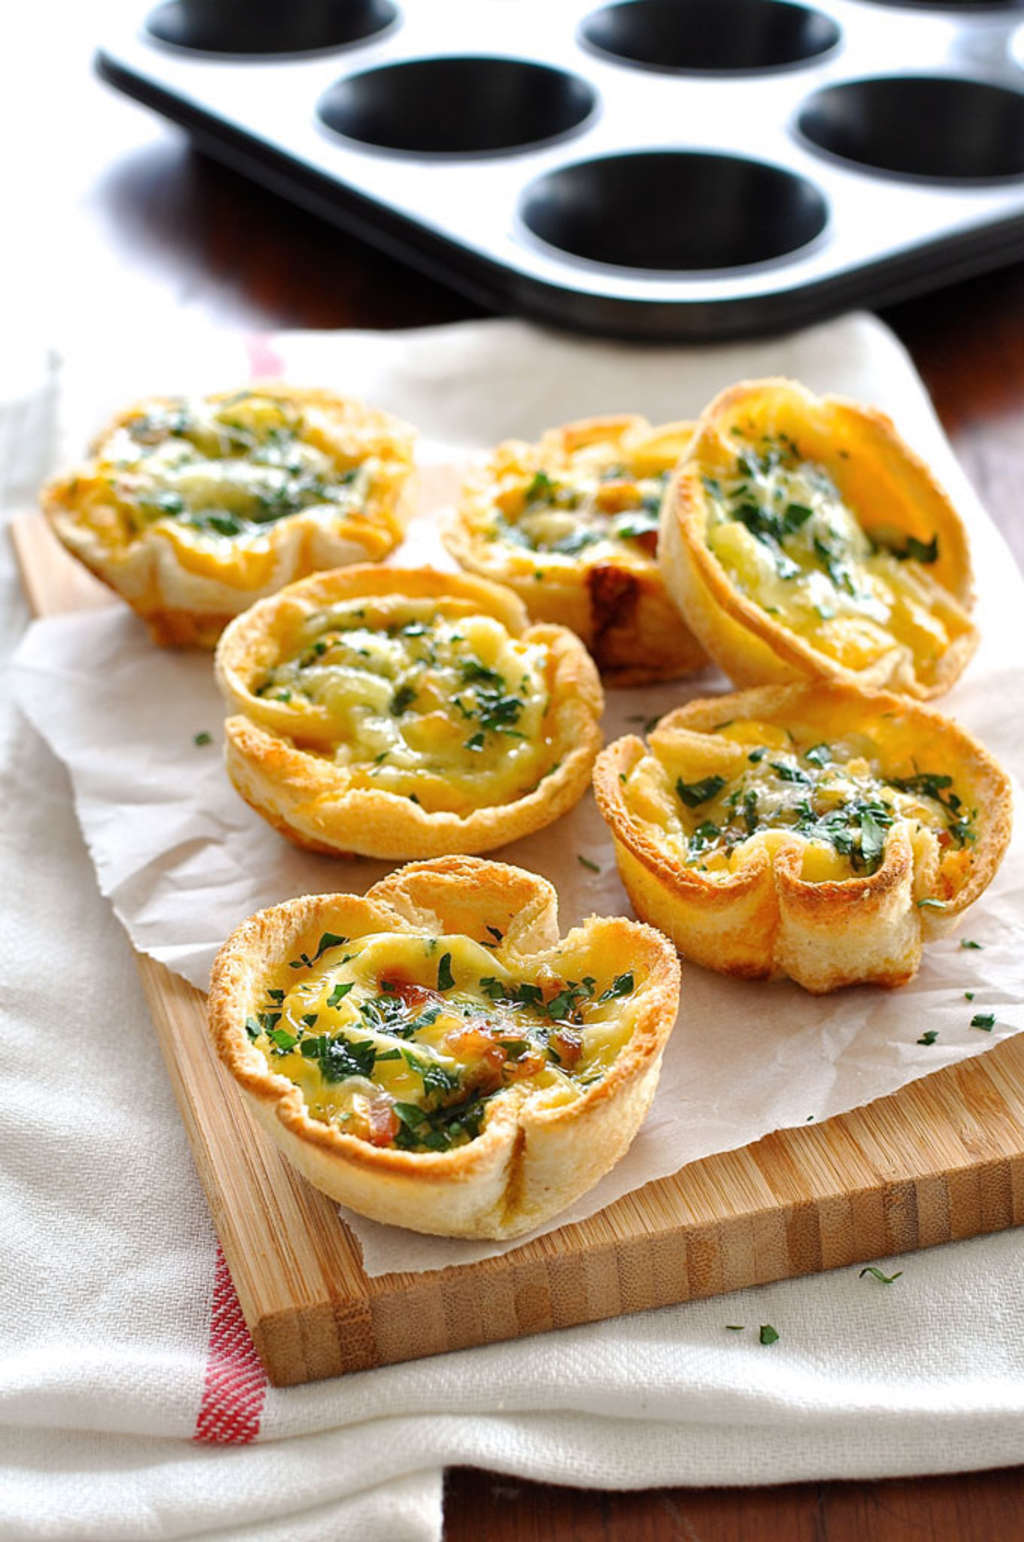 This Is the Most Popular Quiche Recipe on Pinterest